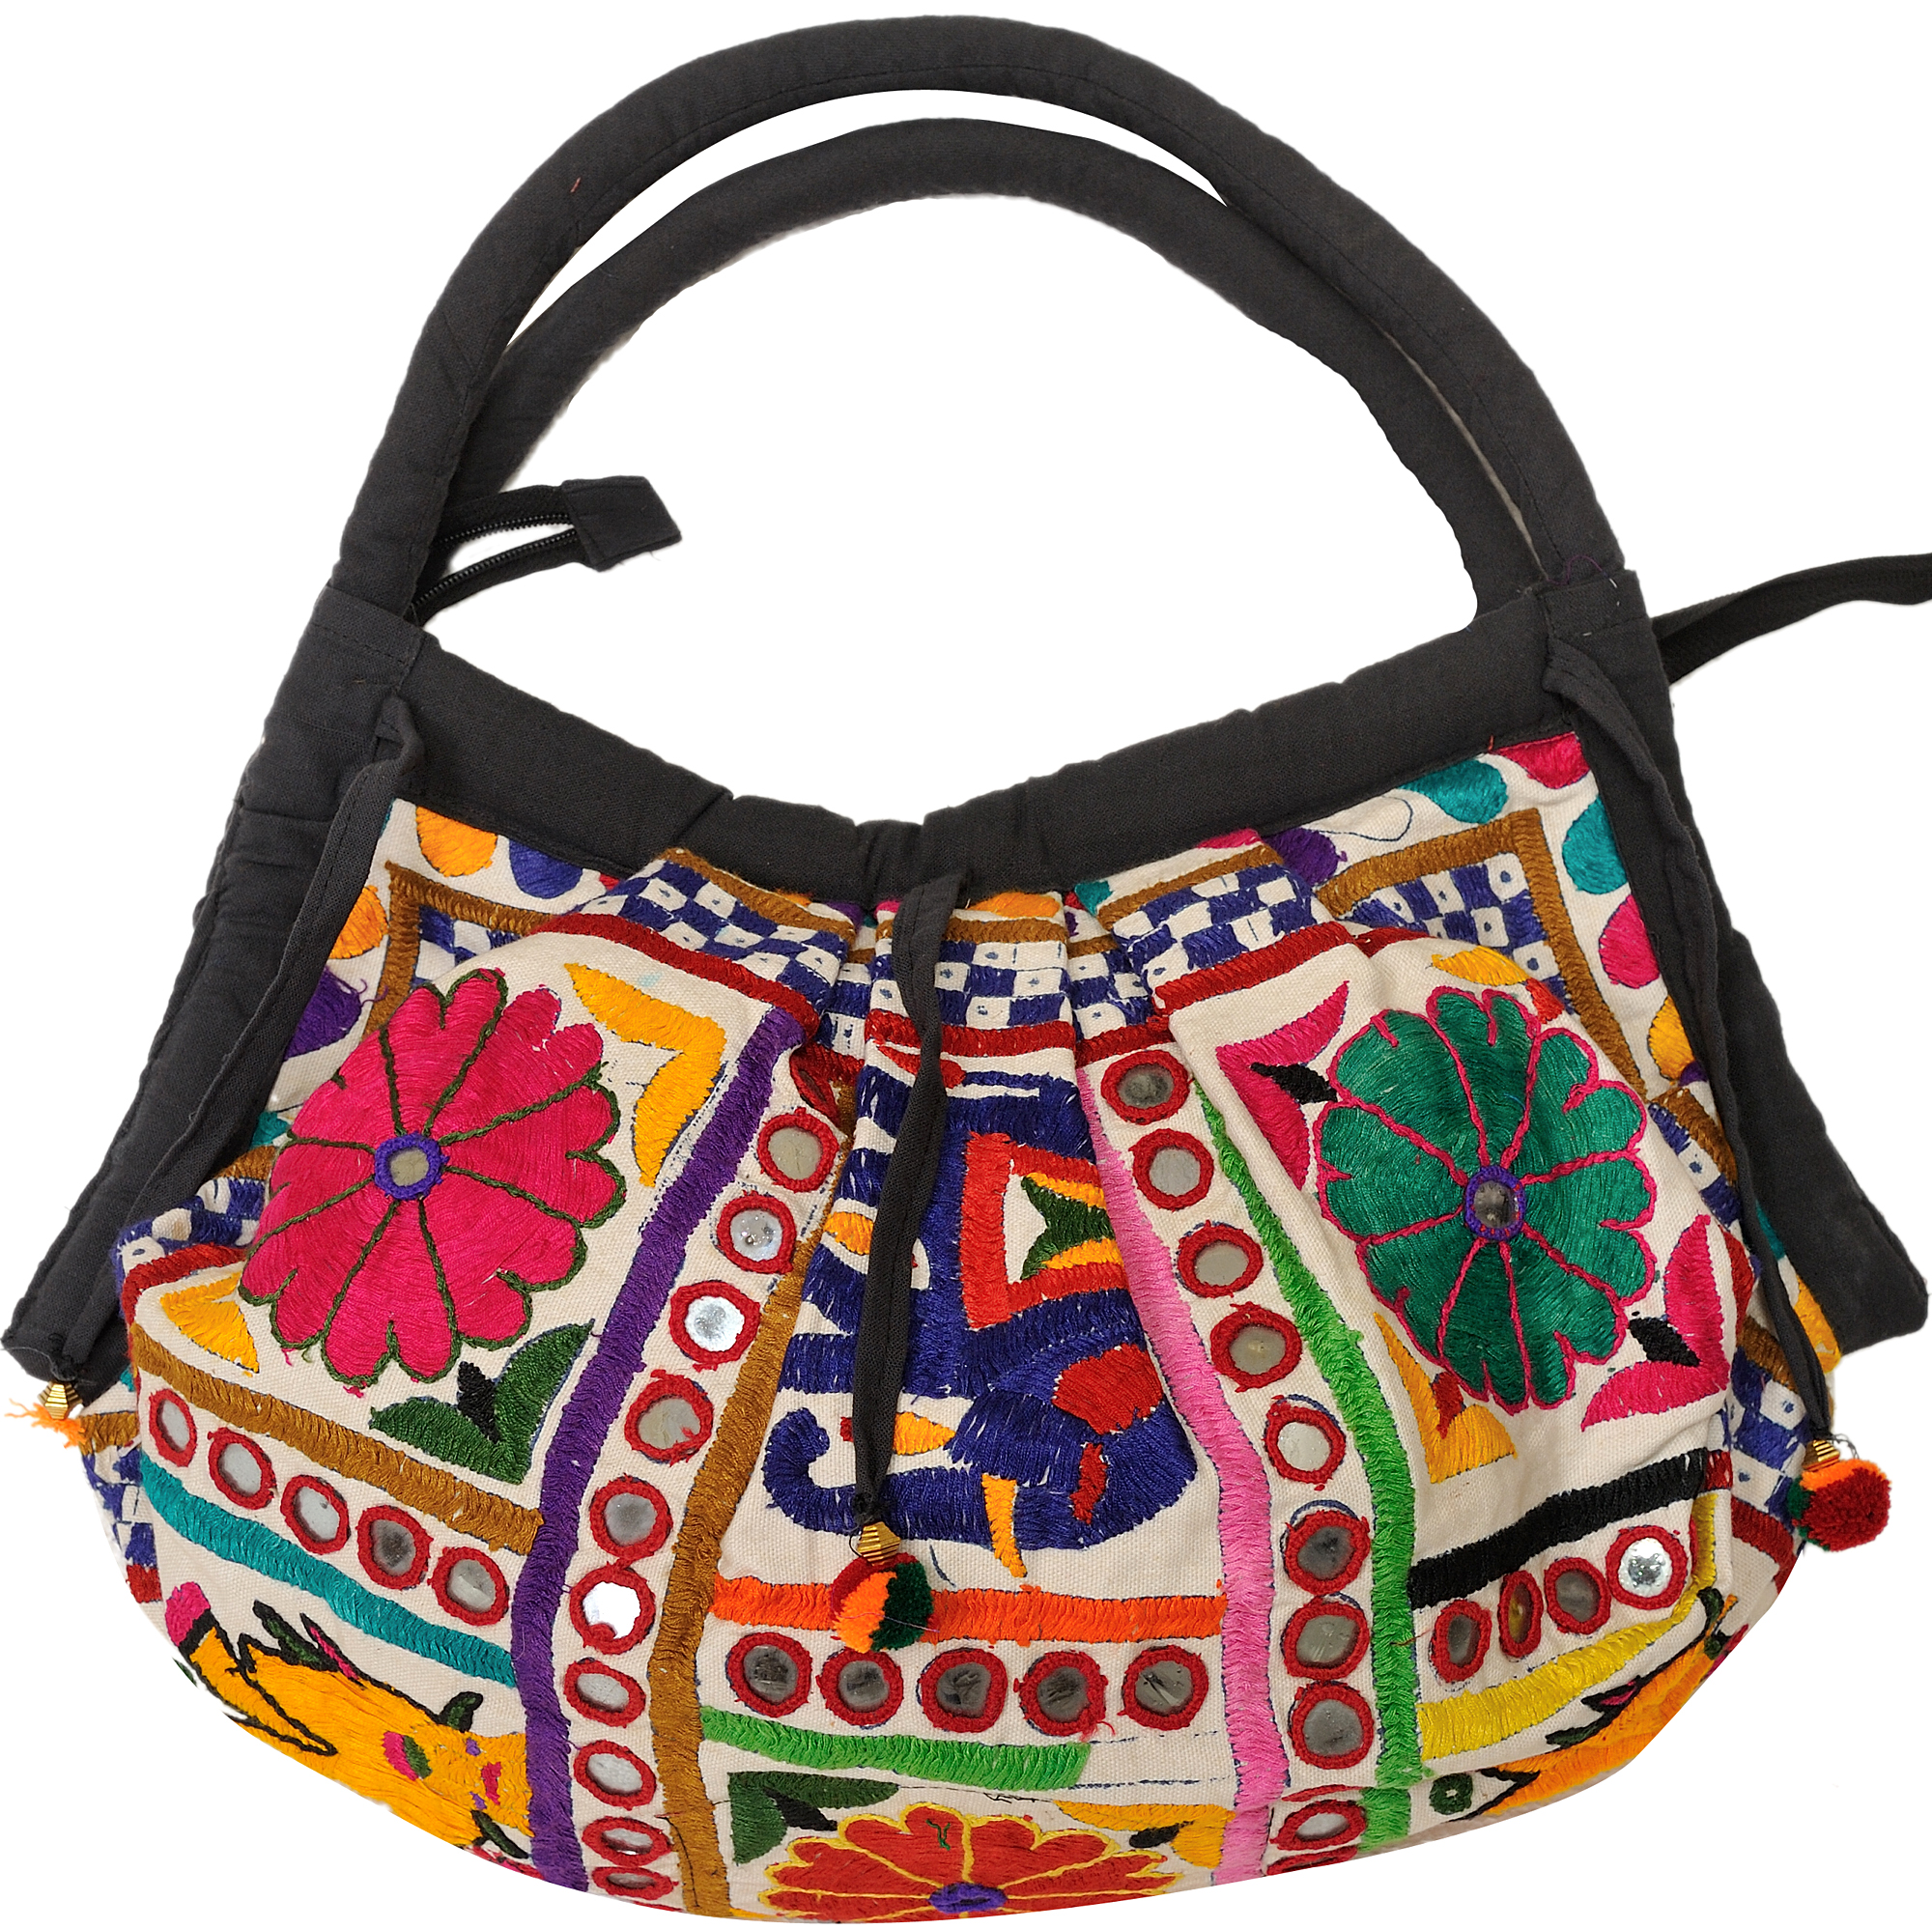 Shopper bag from kutch with embroidered flowers and mirrors